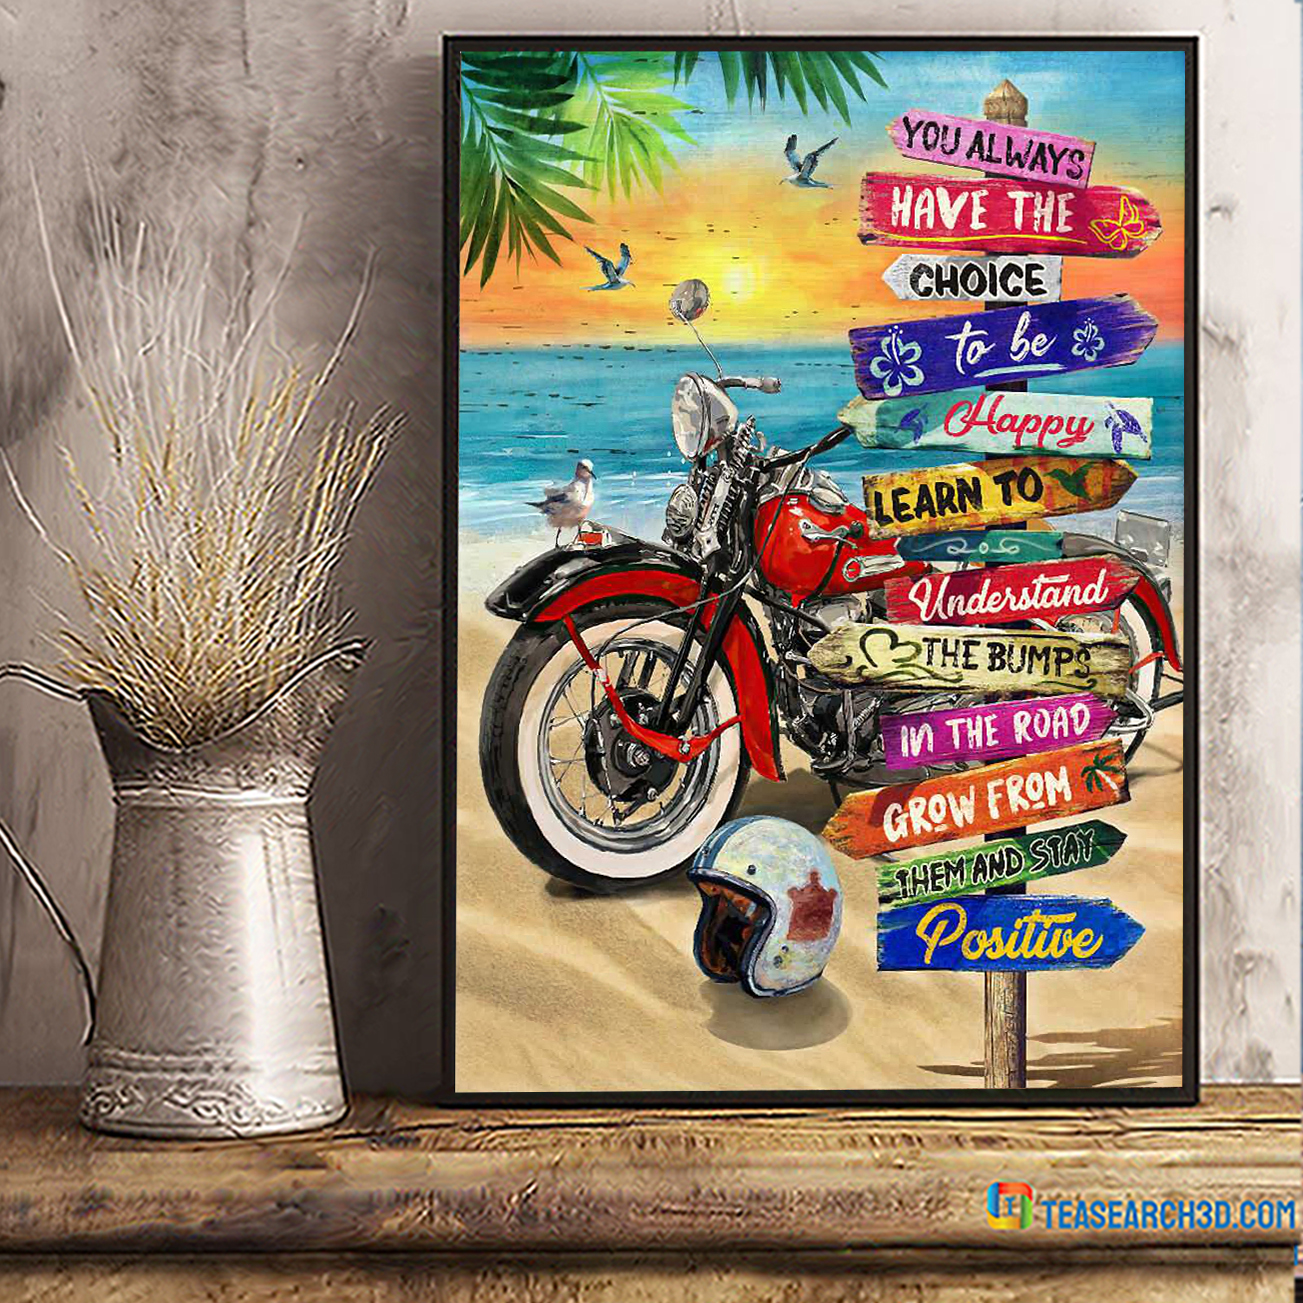 Summer beach harley davidson motorcycle you always have the choice poster A1